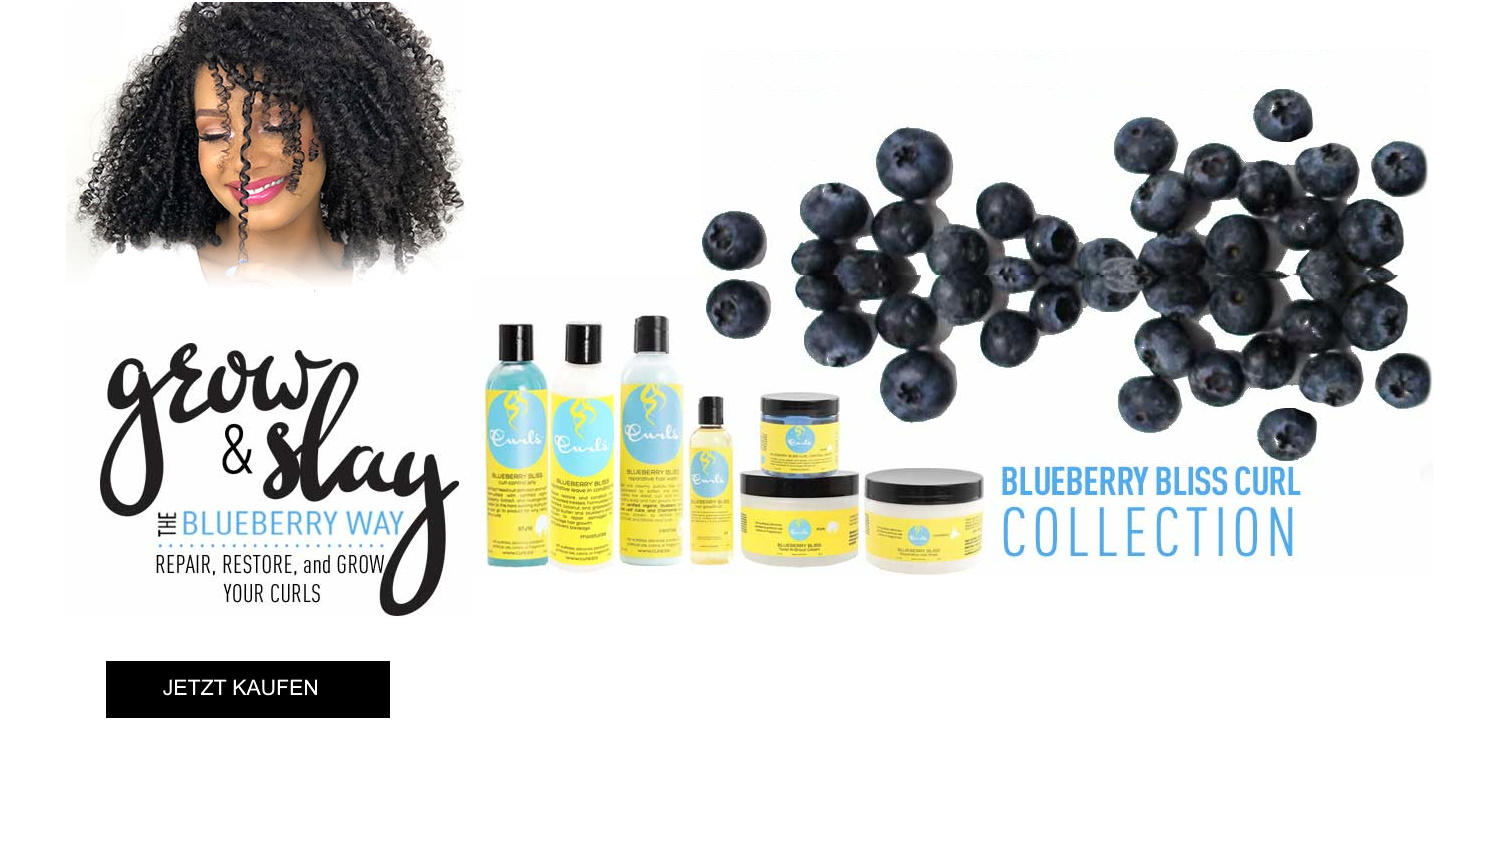 Blueberry Bliss Curl Collection